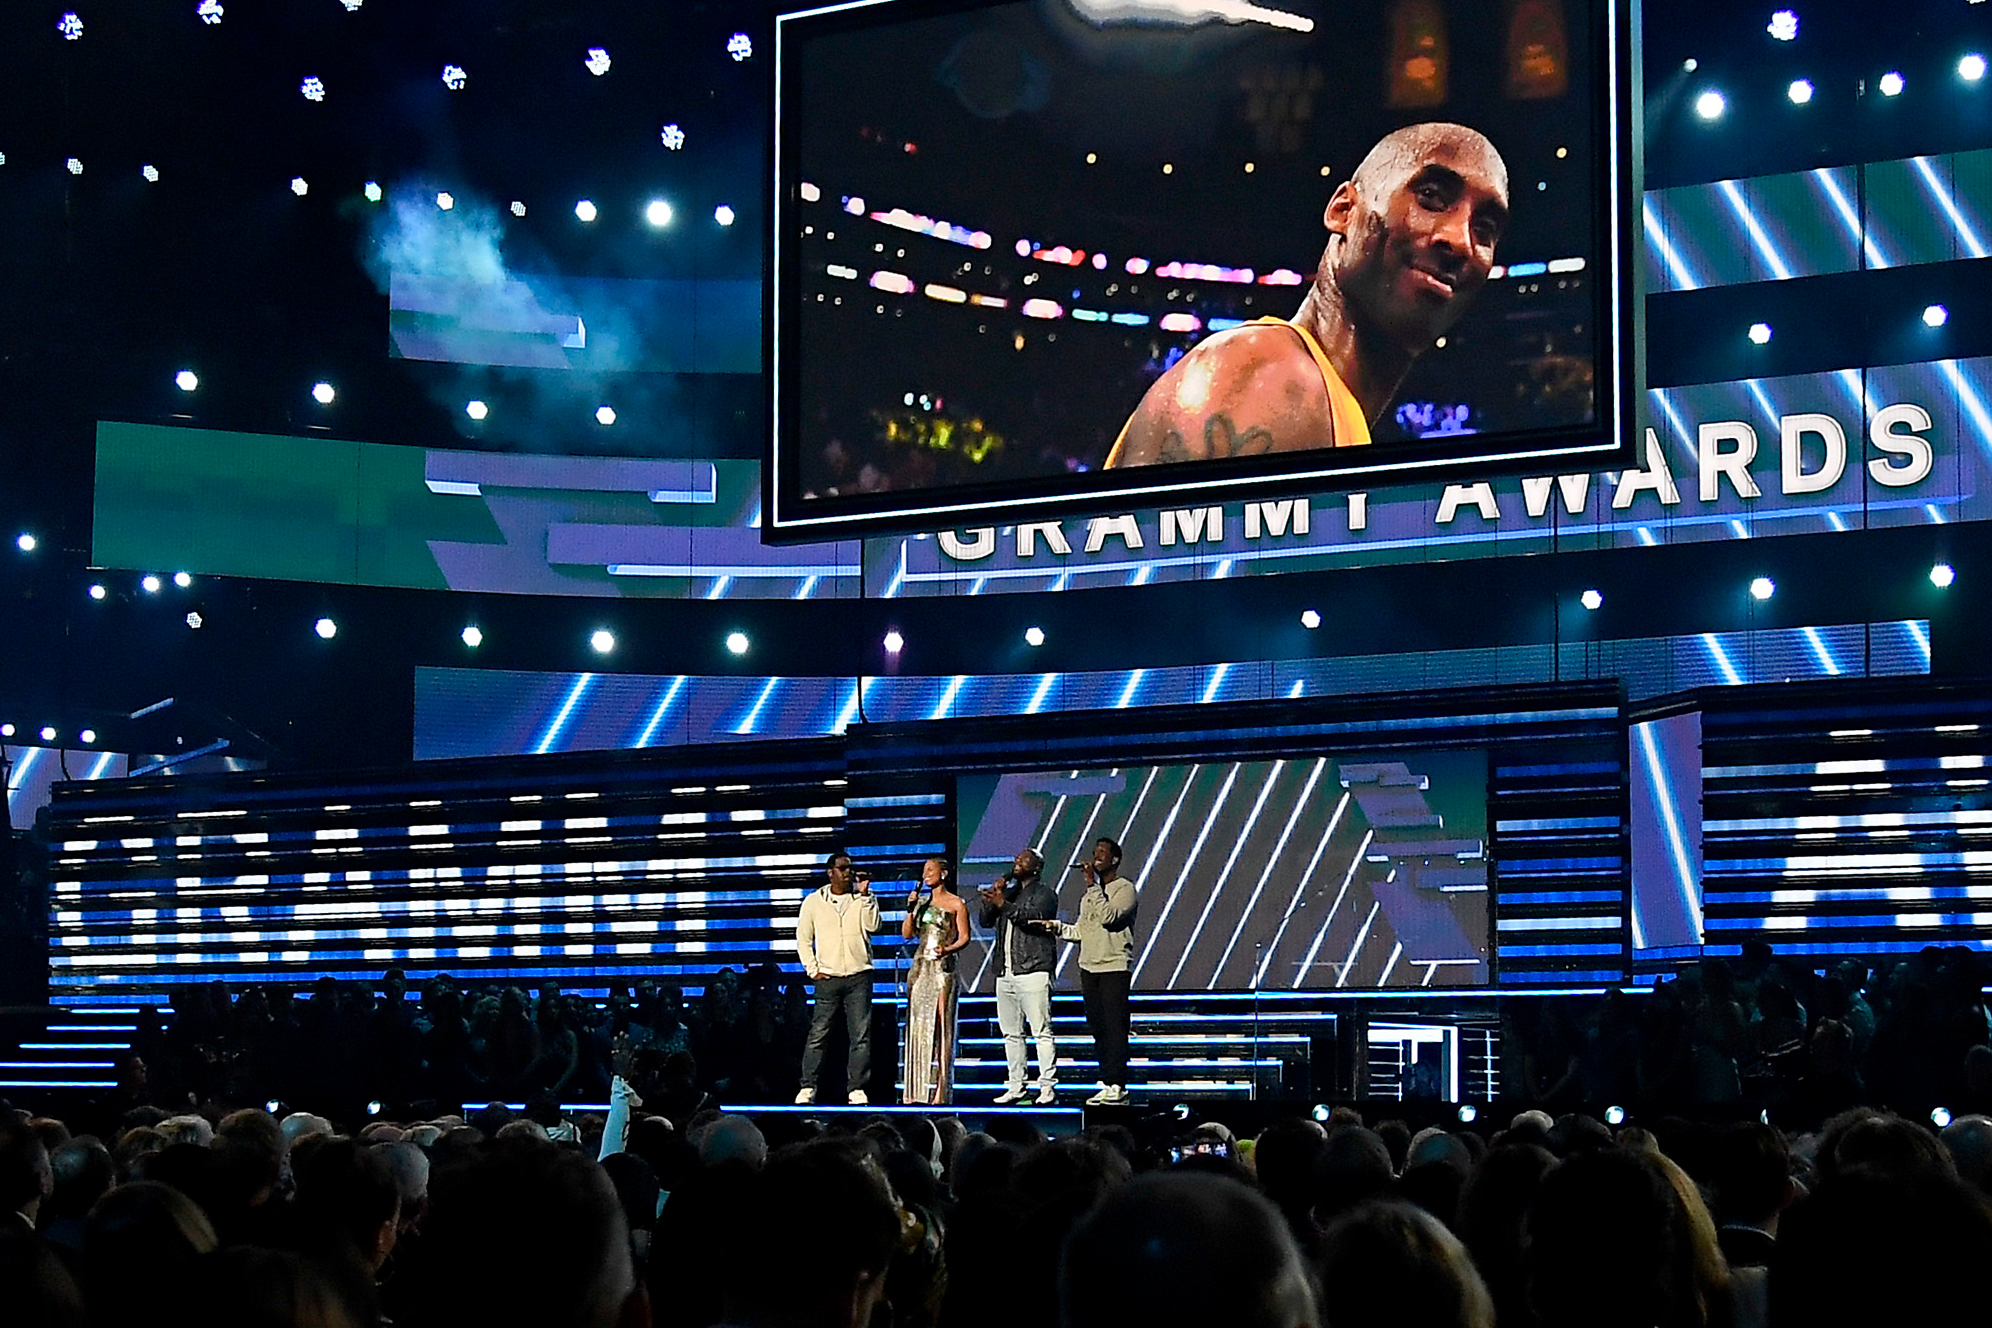 Kobe Bryant 62nd Annual Grammy Awards CBS Billie Eilish Lizzo Tyler the Creator Lil Nas X Los Angeles Lakers NBA